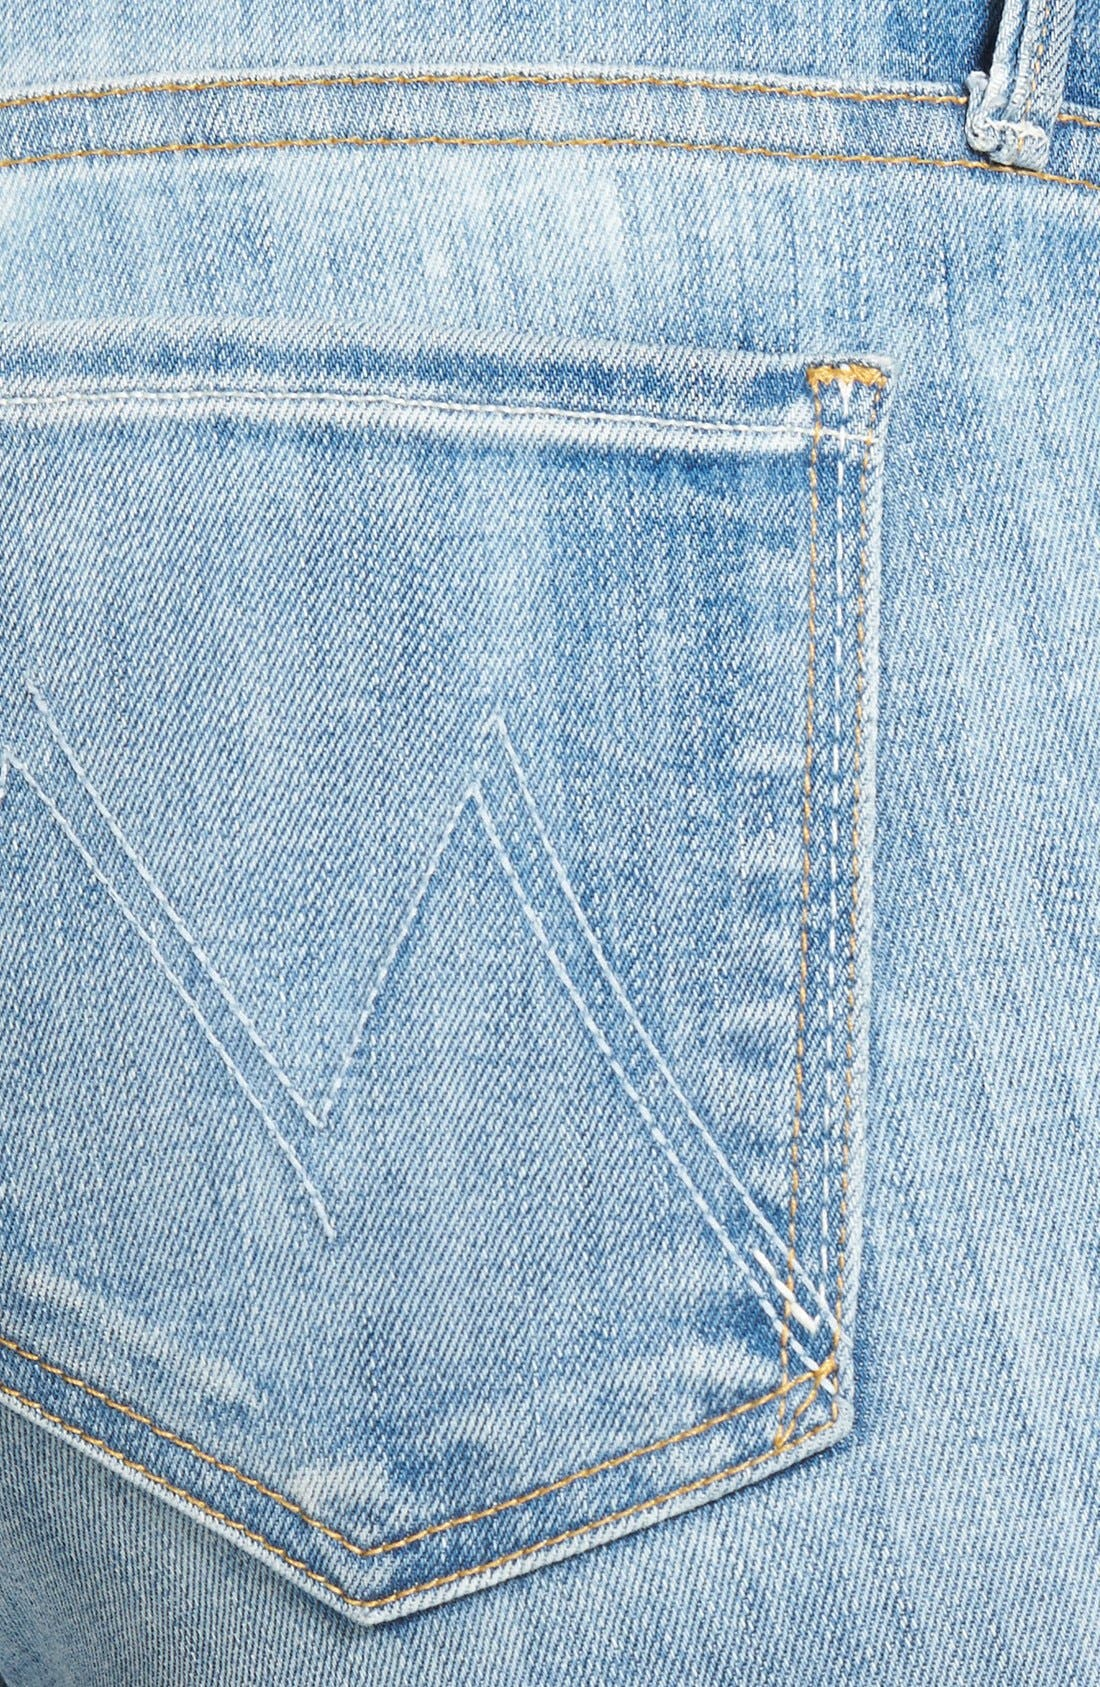 Alternate Image 3  - MOTHER 'The Looker' Frayed Crop Skinny Jeans (Spreading Rumors)